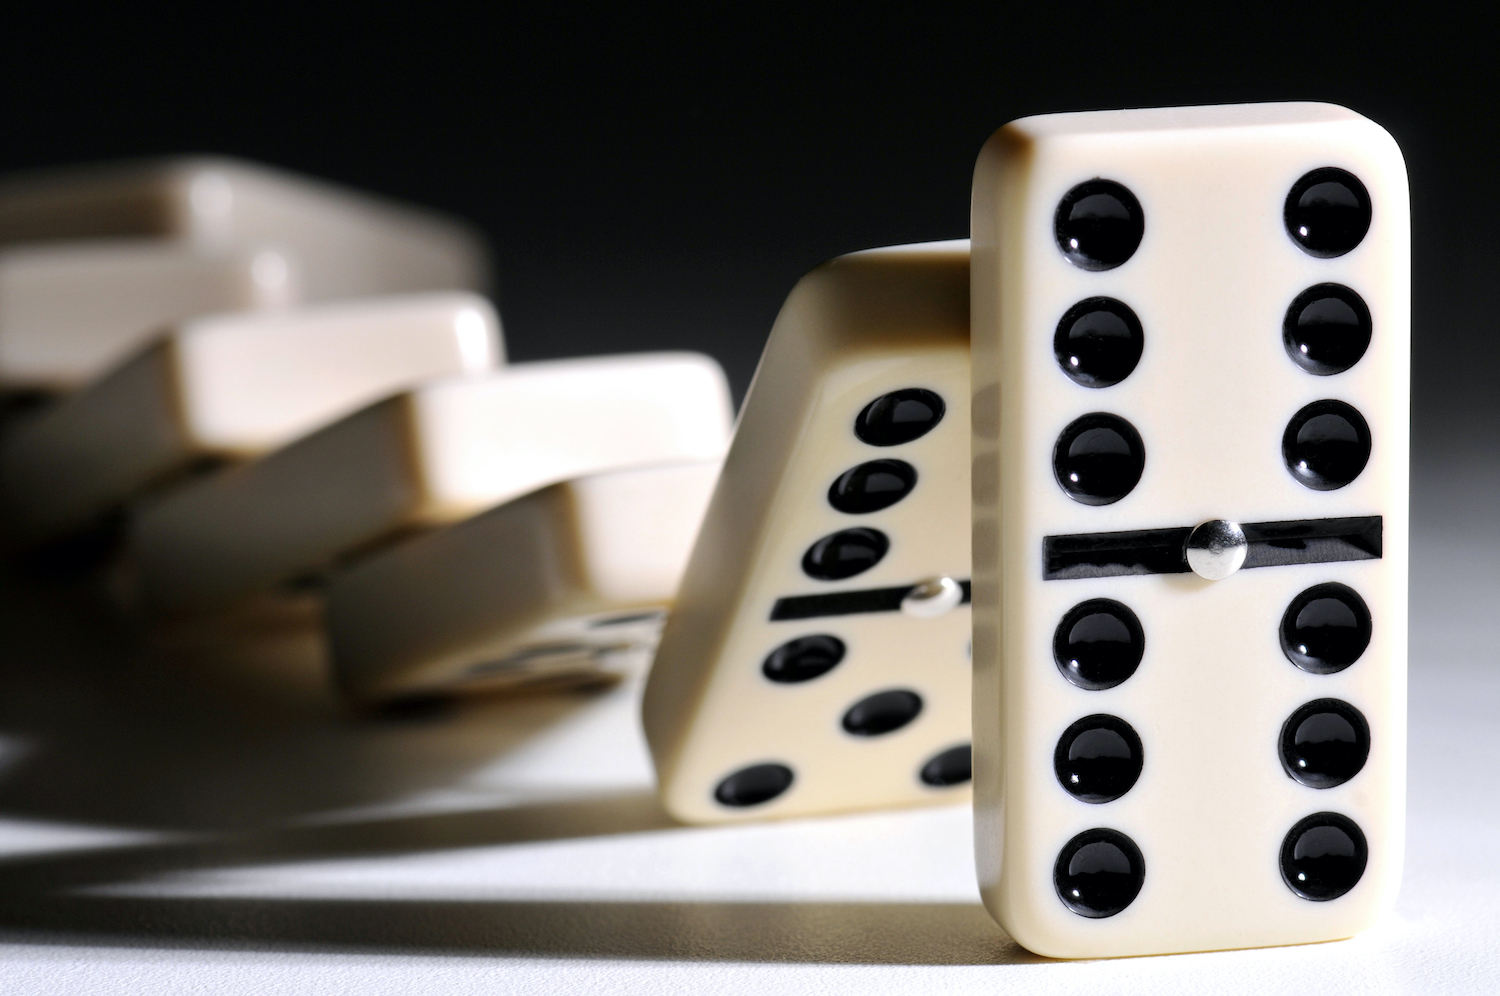 Close-Up Of Dominoes On Table